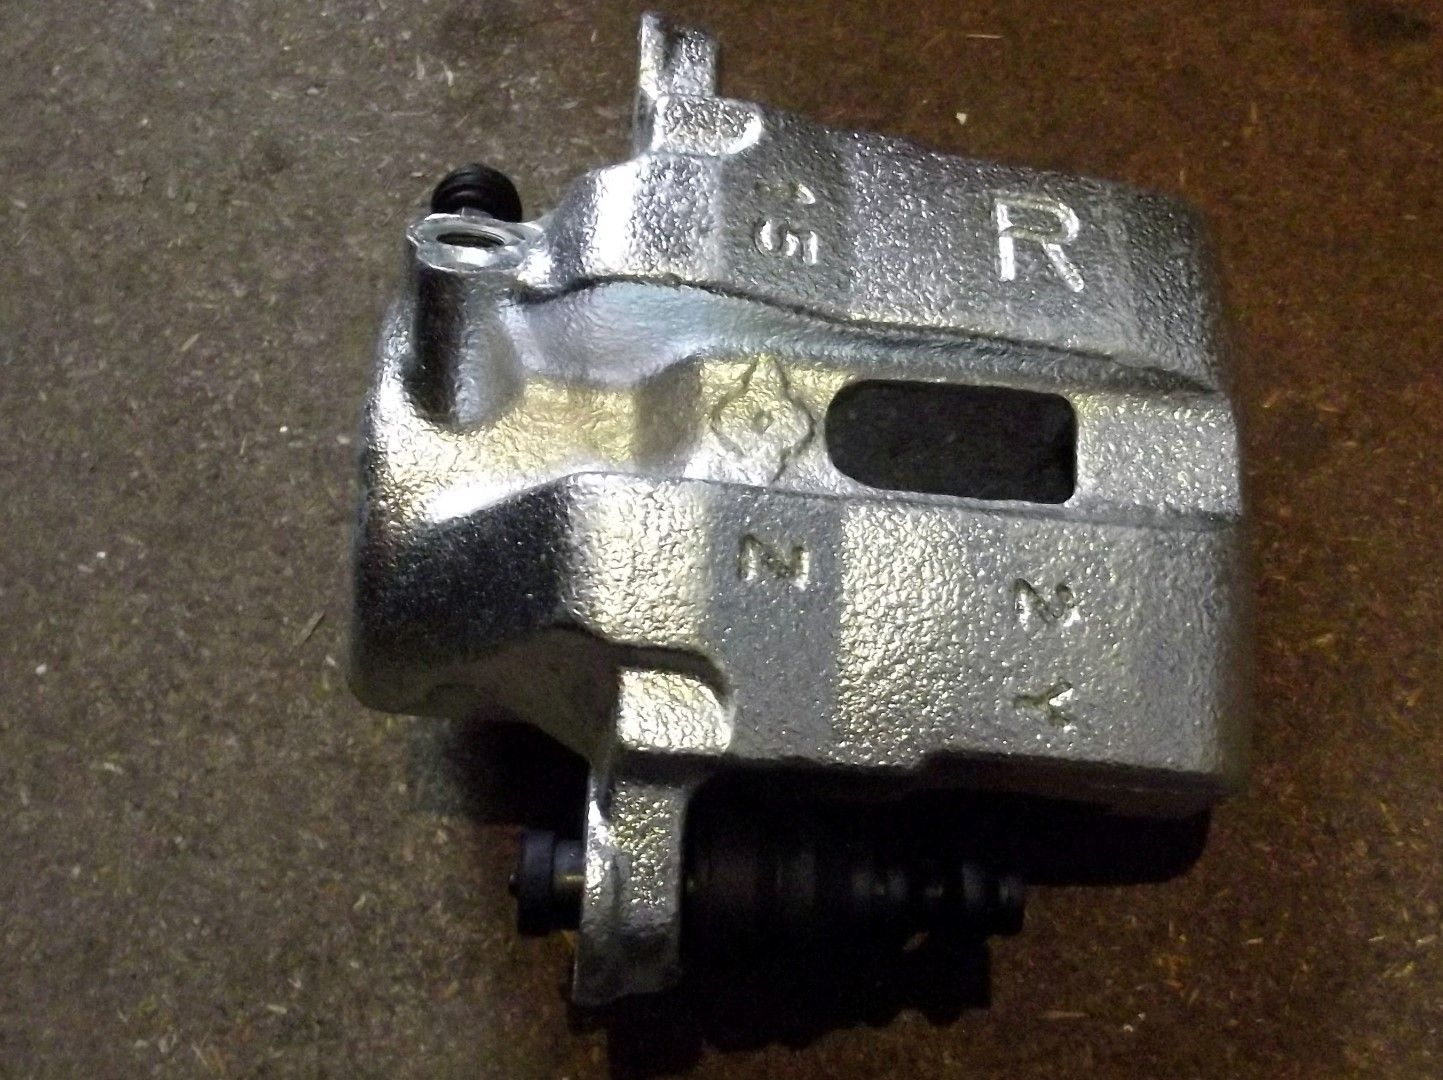 Brake caliper, front r/h, genuine Mazda MX-5 mk1 1.8 & Mk2, right hand, remanufactured